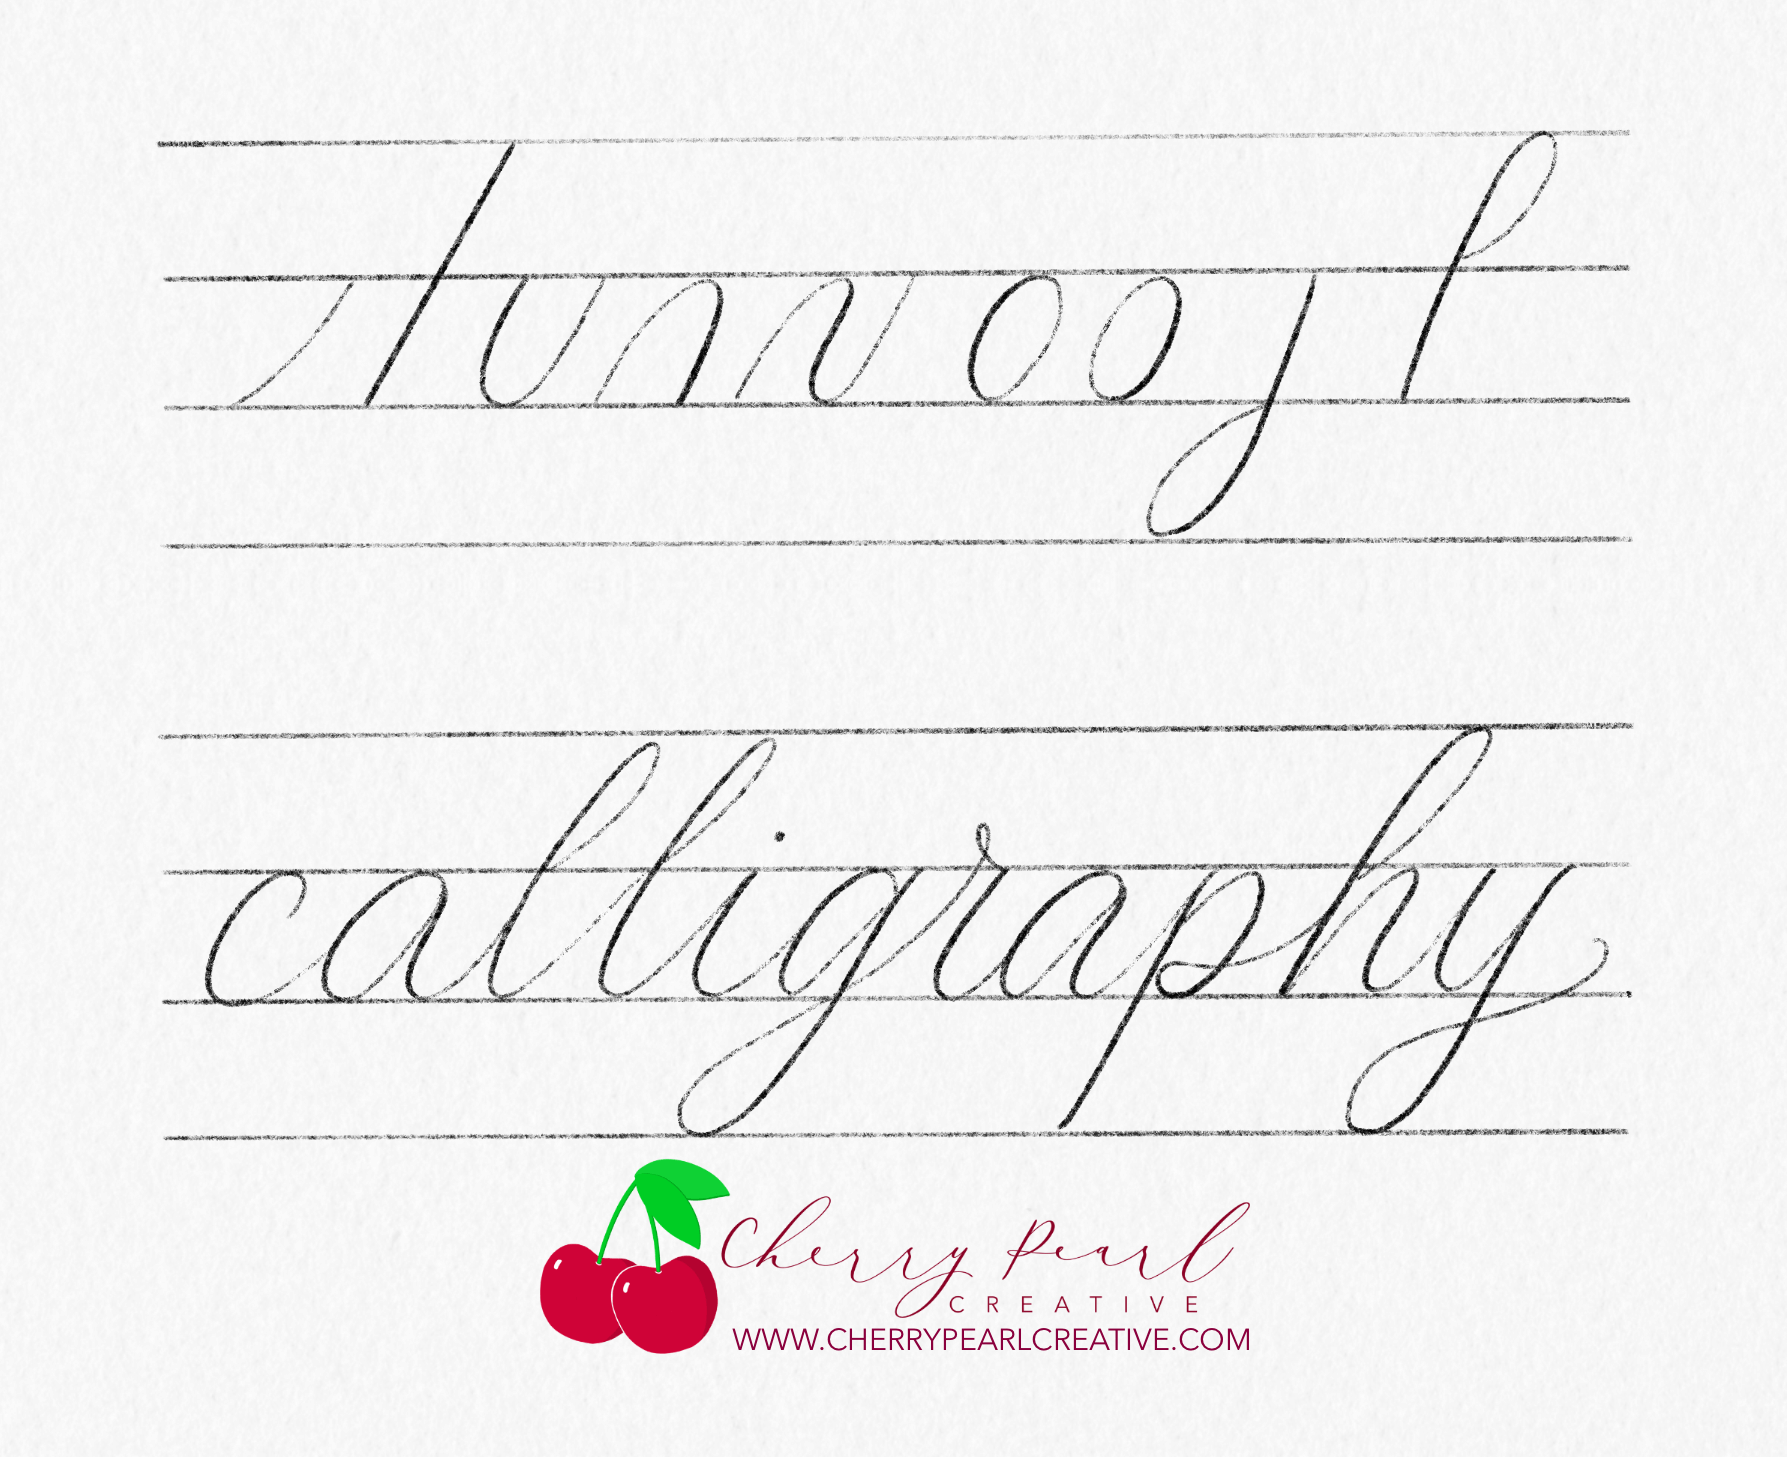 Calligraphy With A Pencil Example - Cherry Pearl Creative